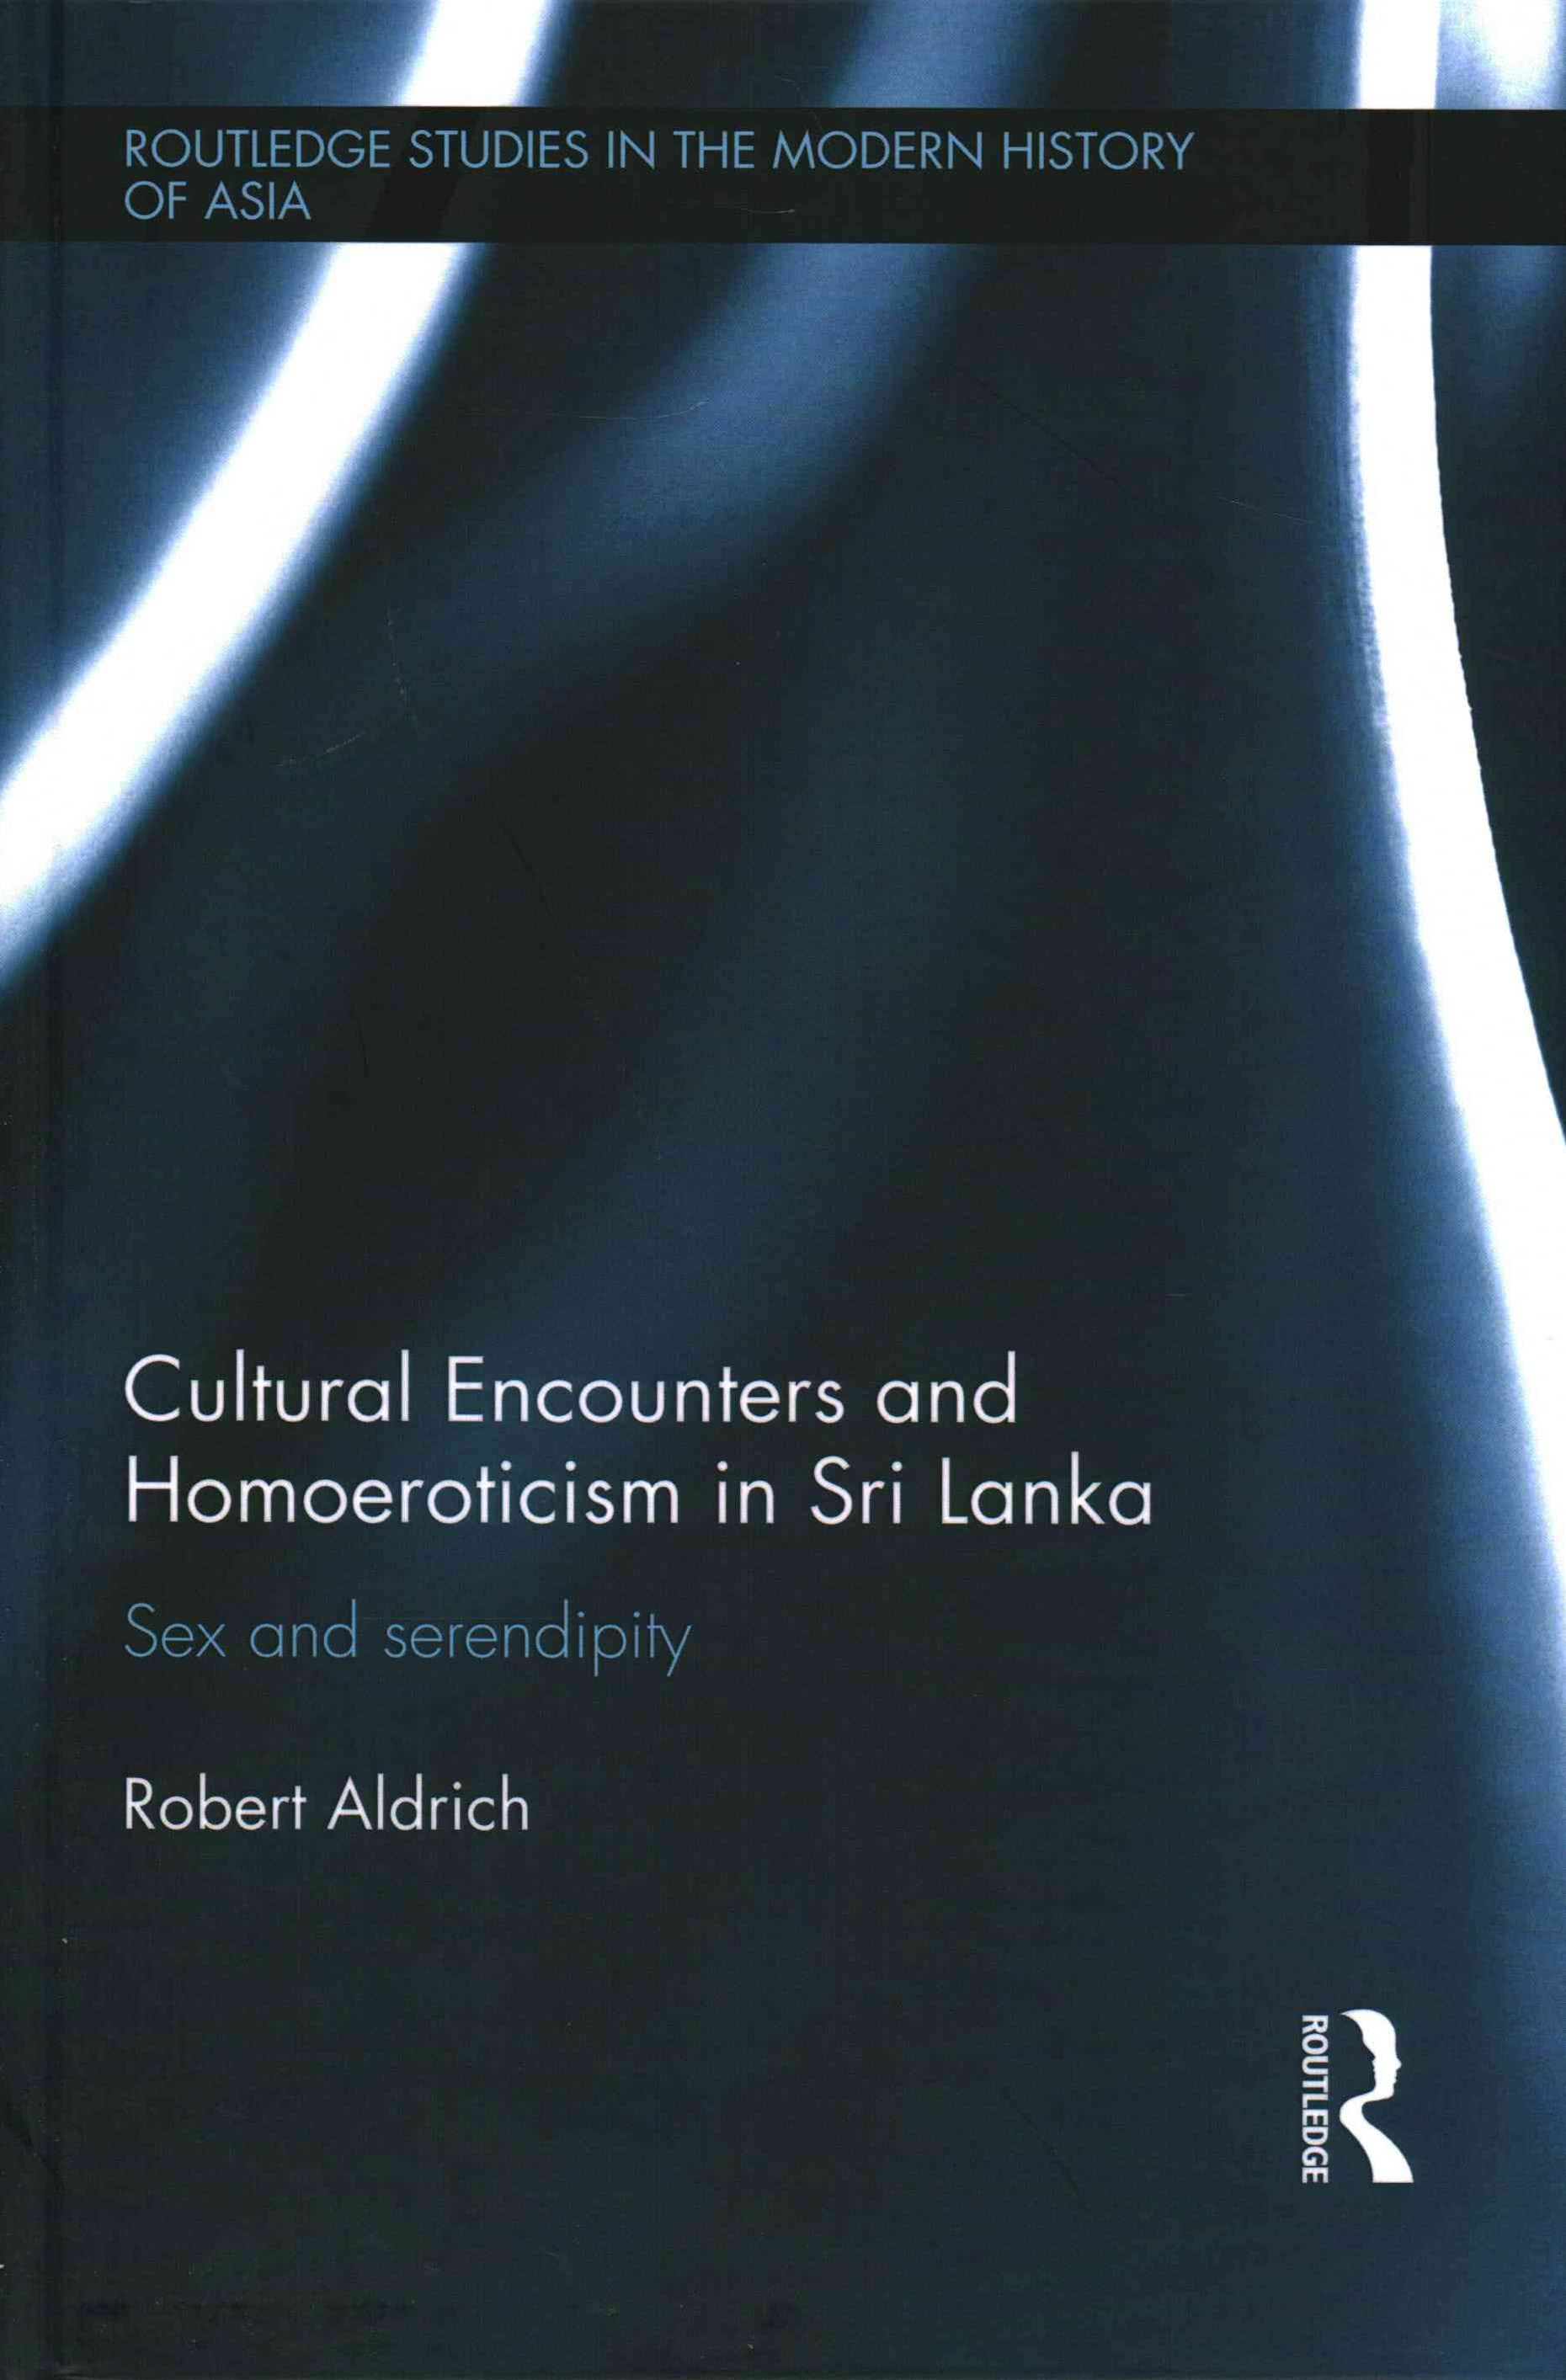 Cultural Encounters and Homoeroticism in Sri Lanka